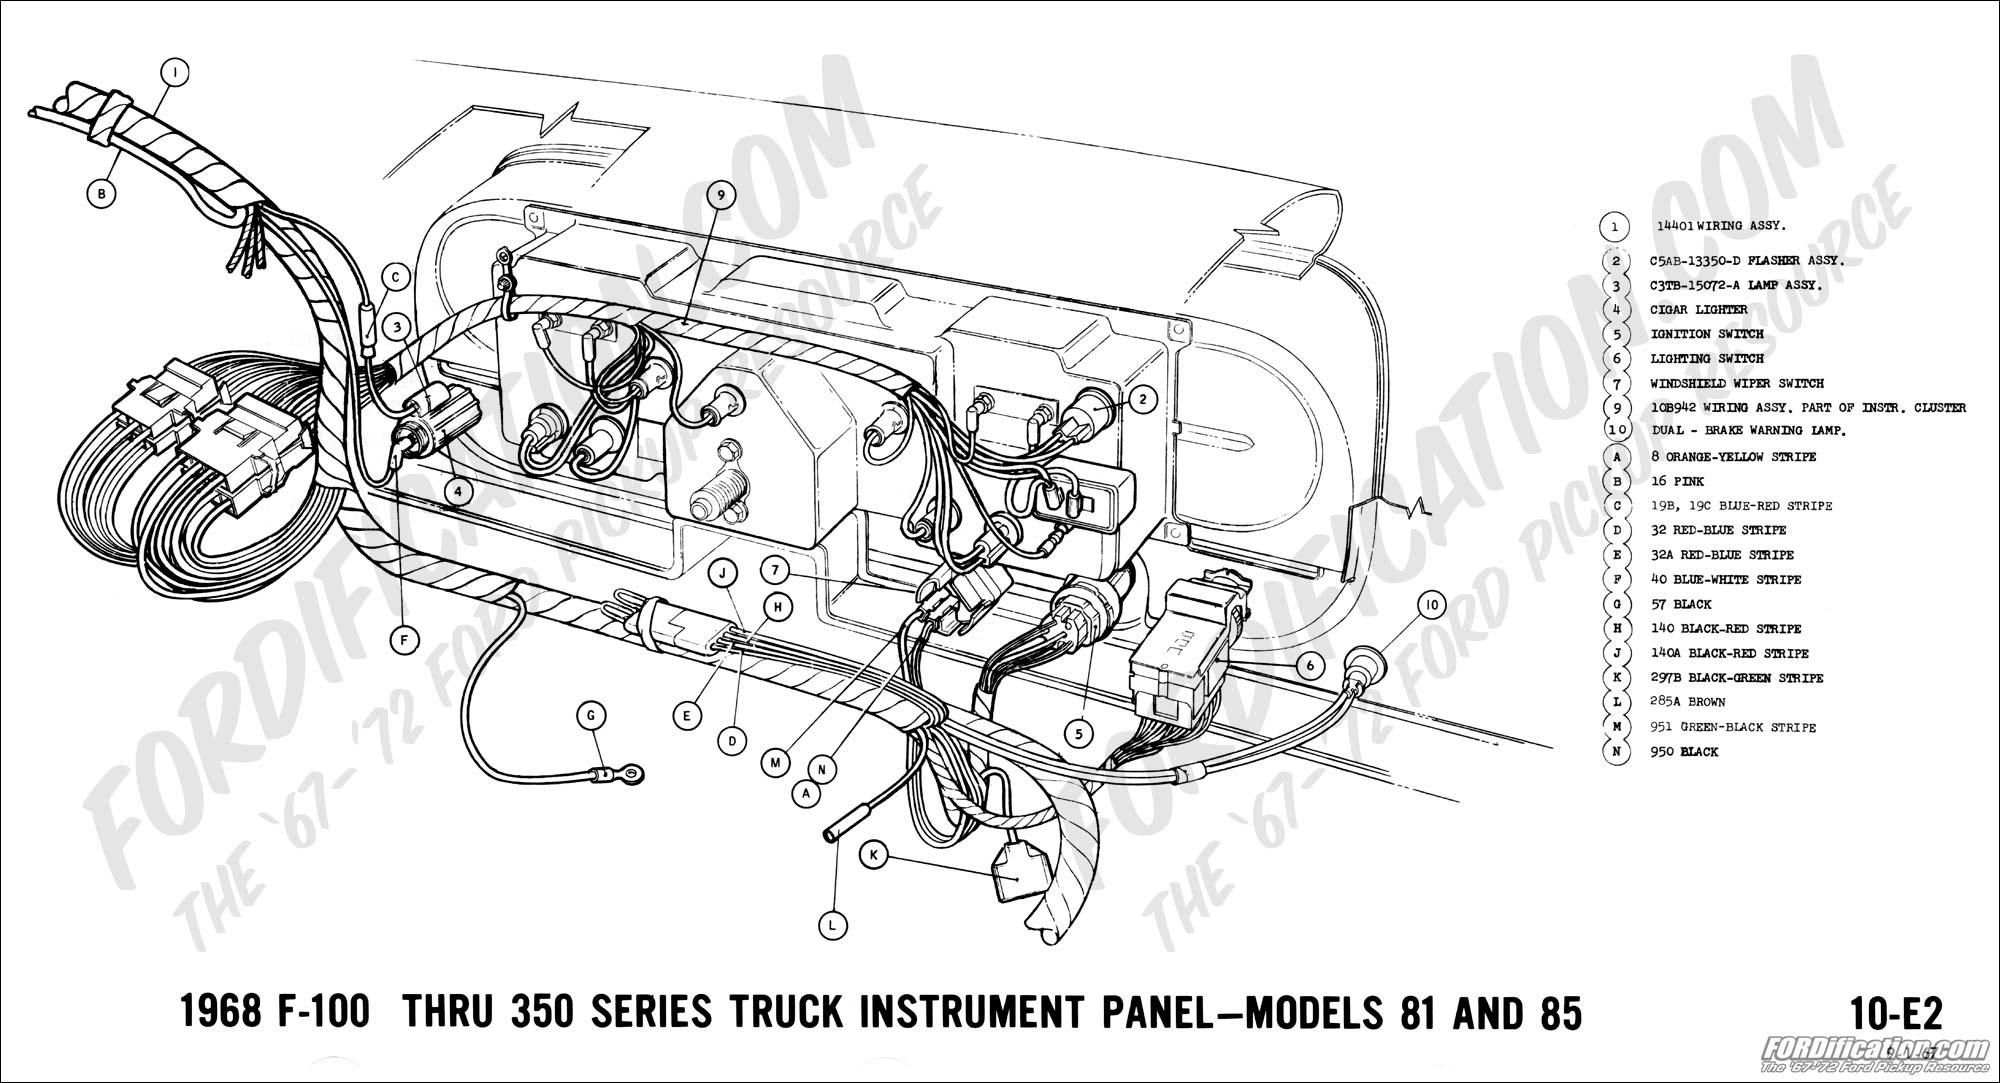 1968 Ford Pickup Wiring Diagram Library Mustang Alternator Guide F 100 Thru 350 Instrument Panel